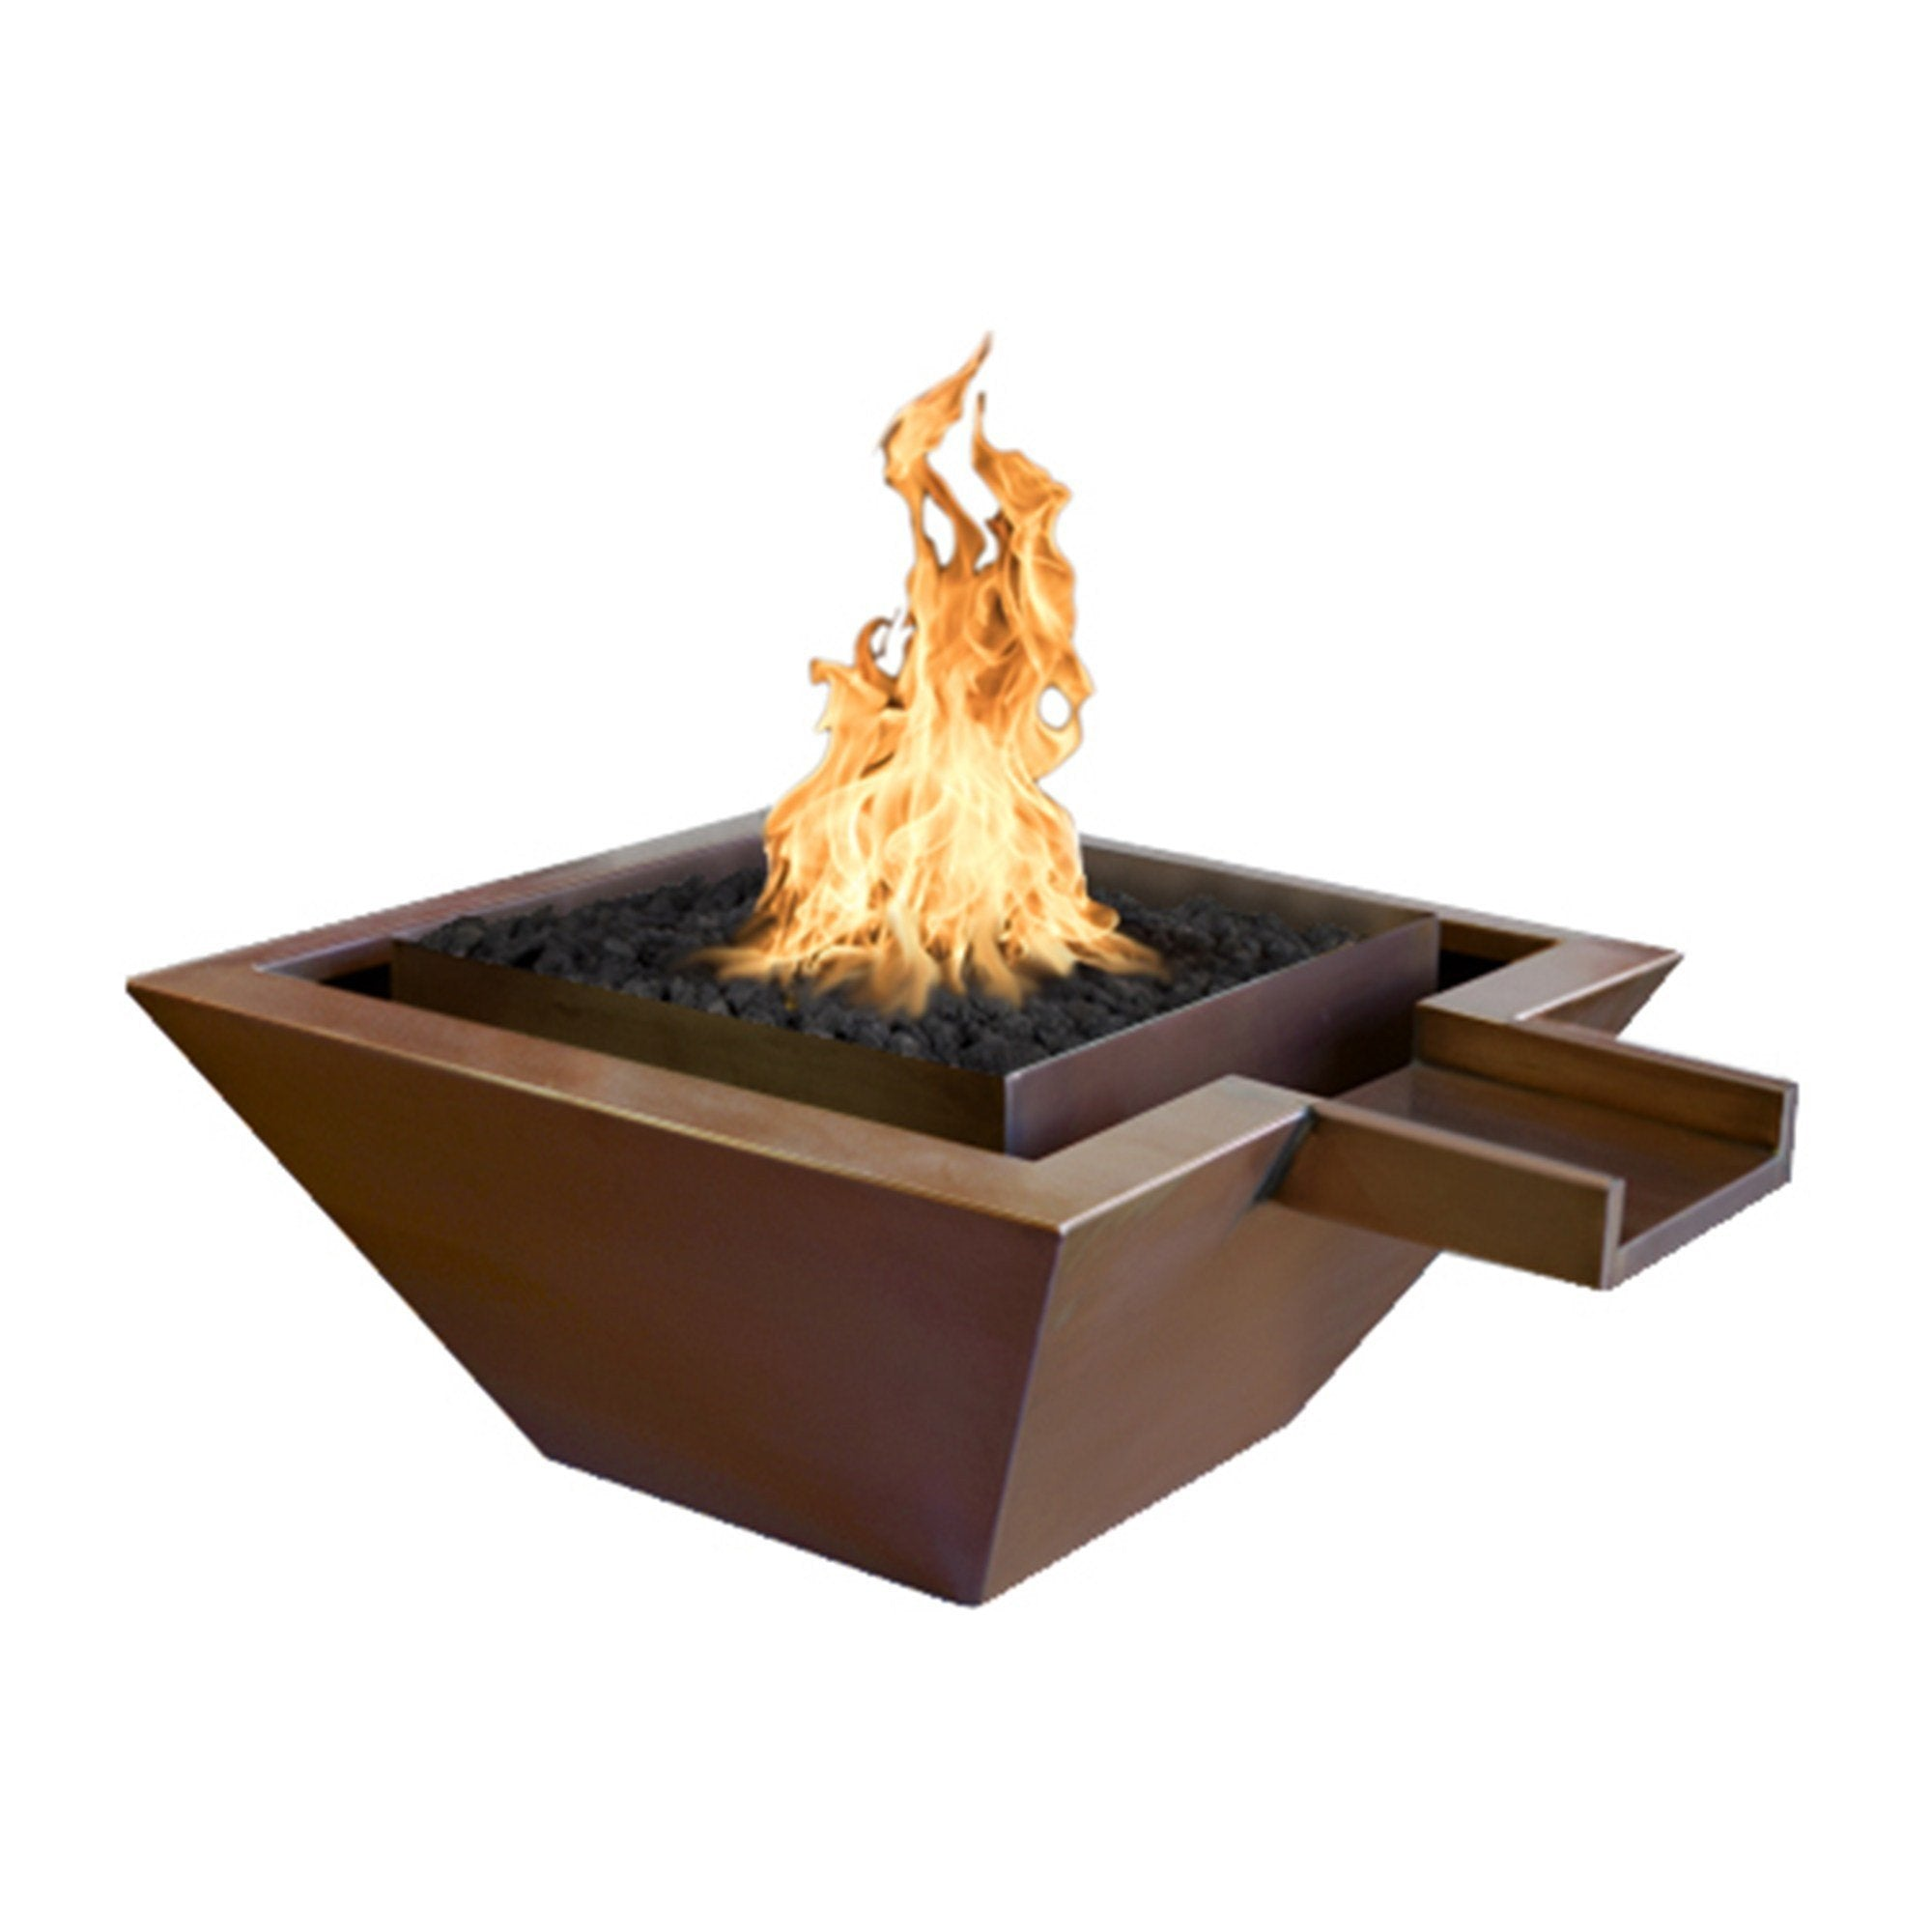 "TOP Fires by The Outdoor Plus Maya Hammered Patina Copper Gravity Spill Fire & Water Bowl 30"" - Fire Pit Oasis"